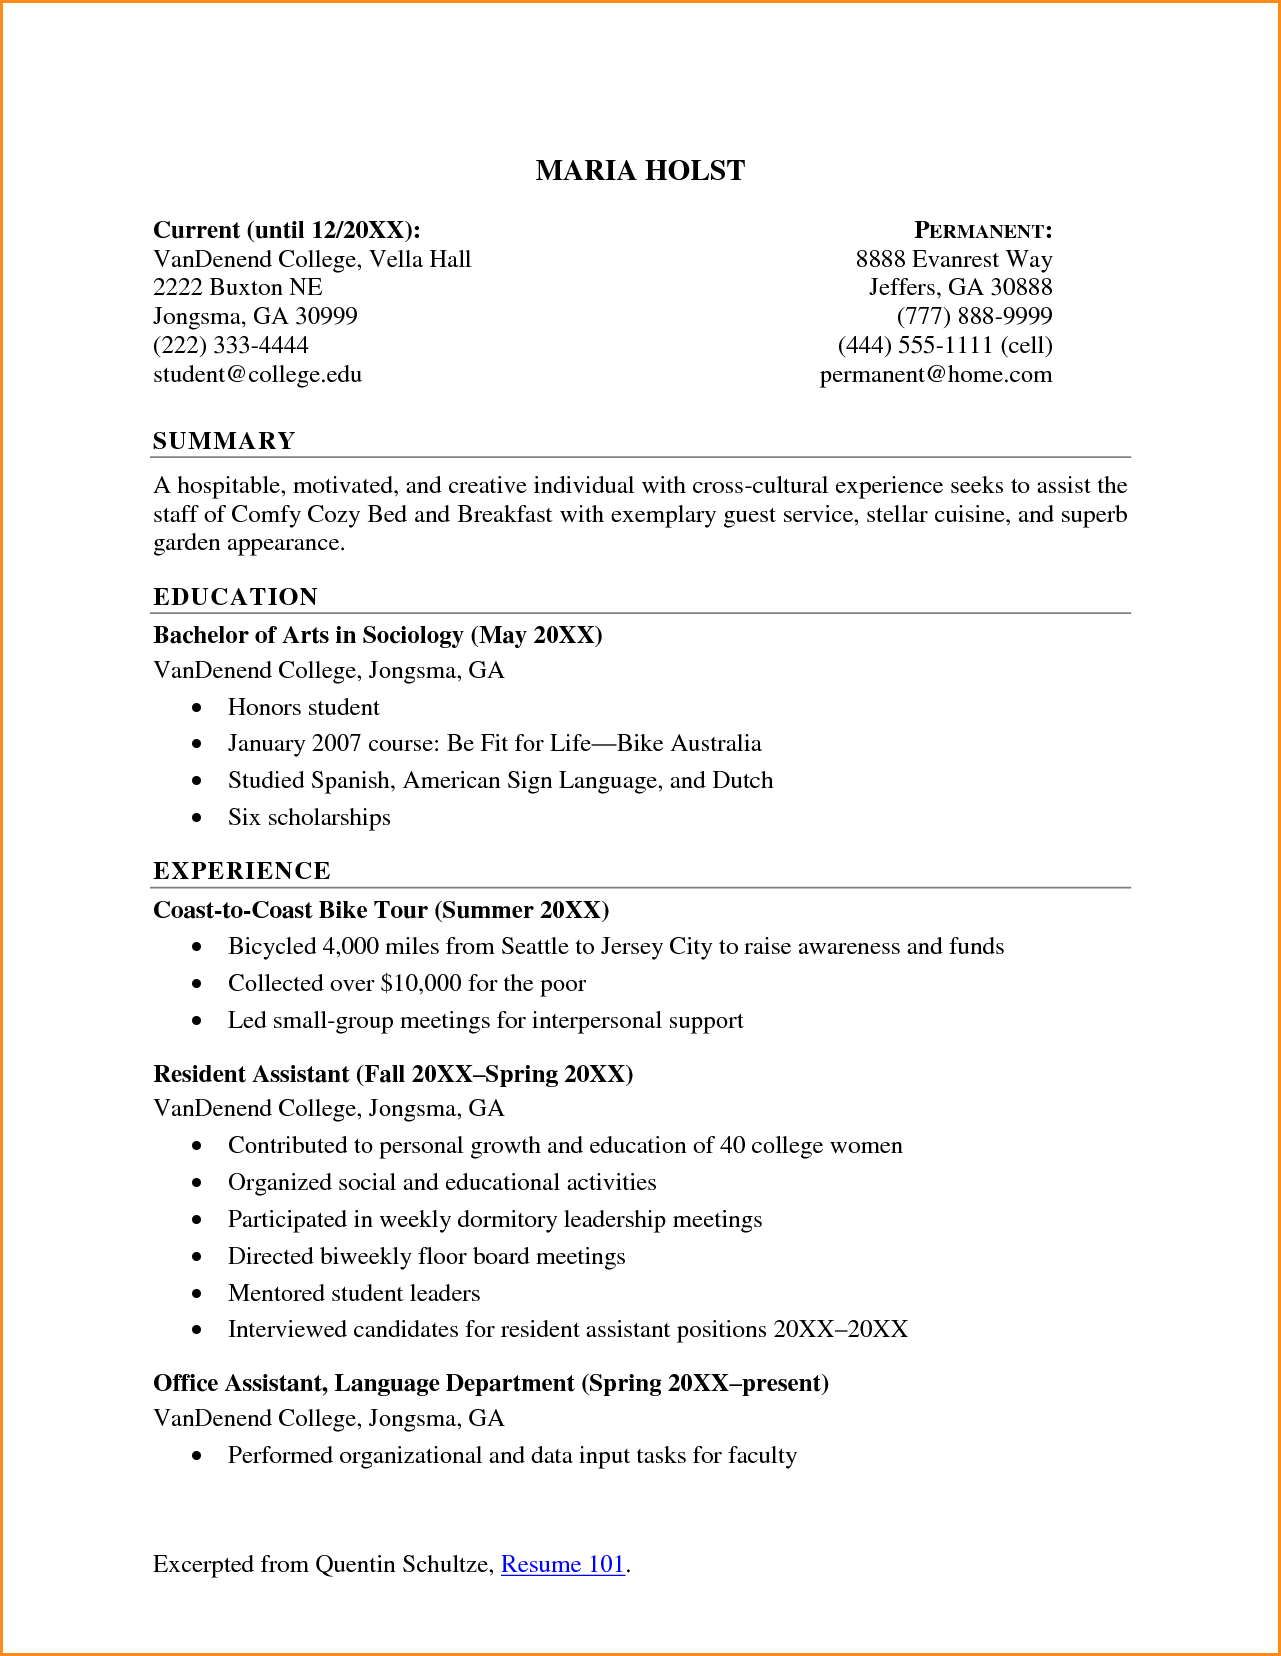 Sample Resumes For High School Students Fair High School Student Resume For College Invoice Template Download .